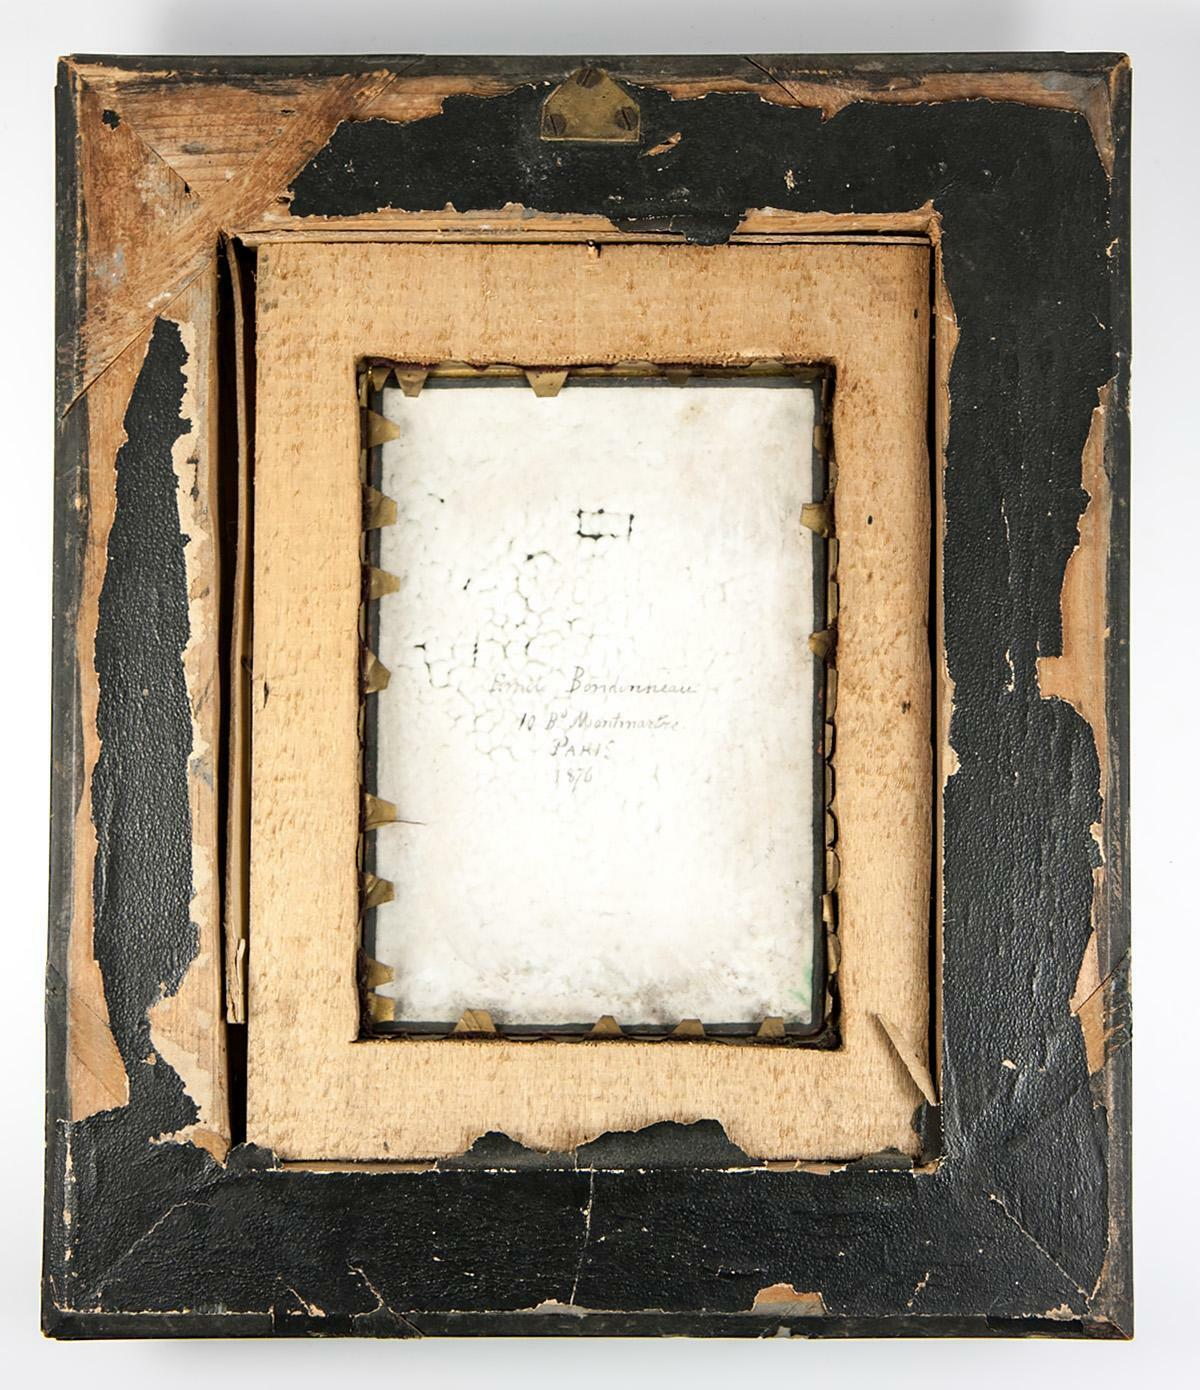 Antique French Photo Technique, Enamel on Convex Plaque, 1/2 Plate Daguerreotype